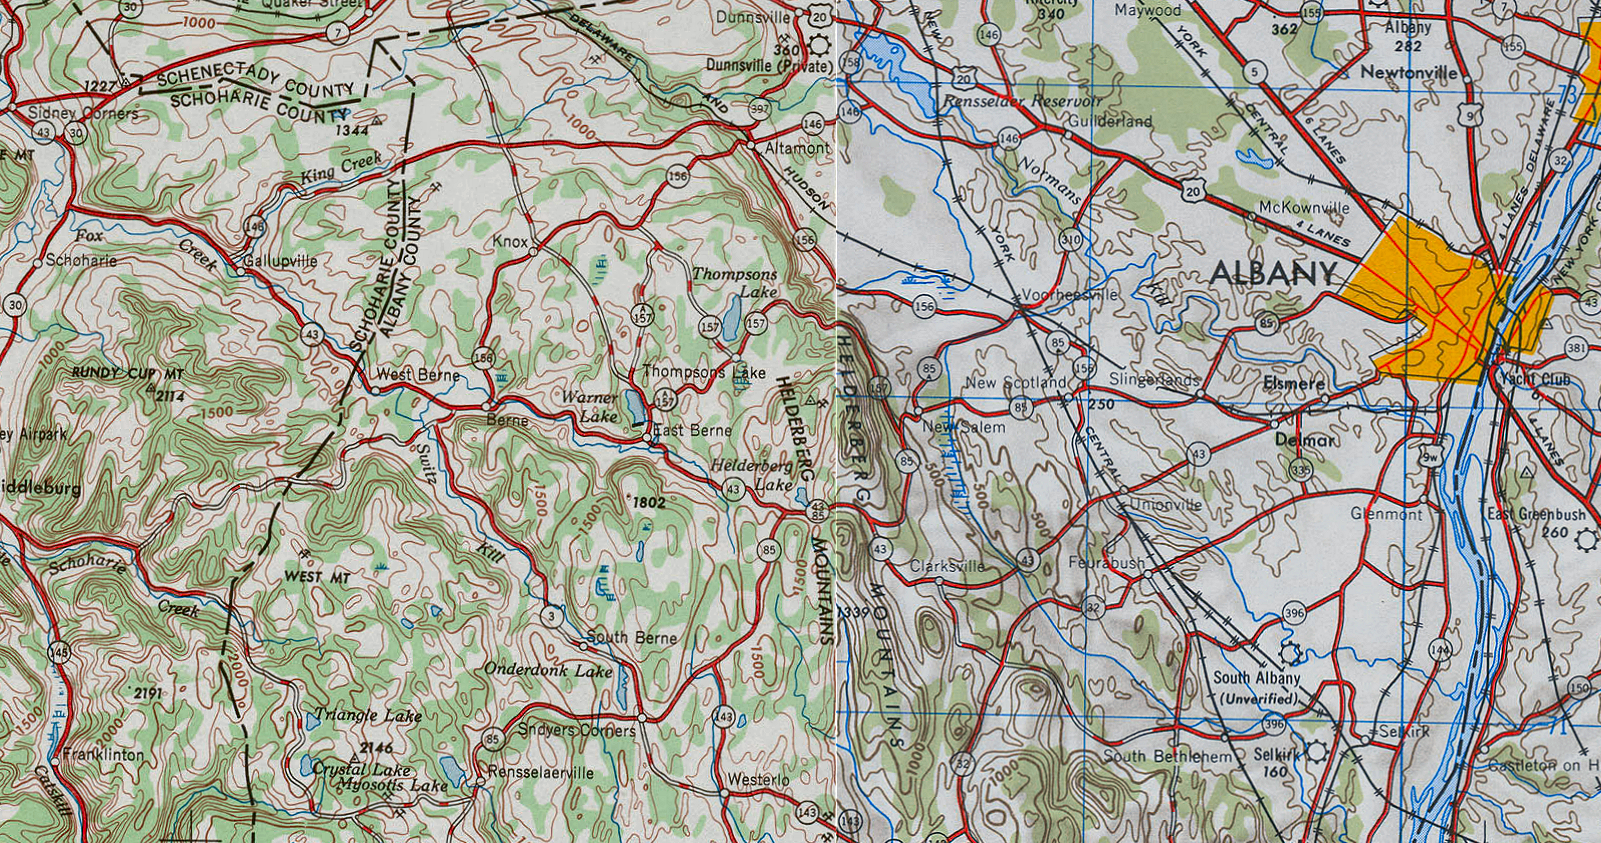 FileNY Former Routing Map Late Spng Wikimedia Commons - Road map new york state